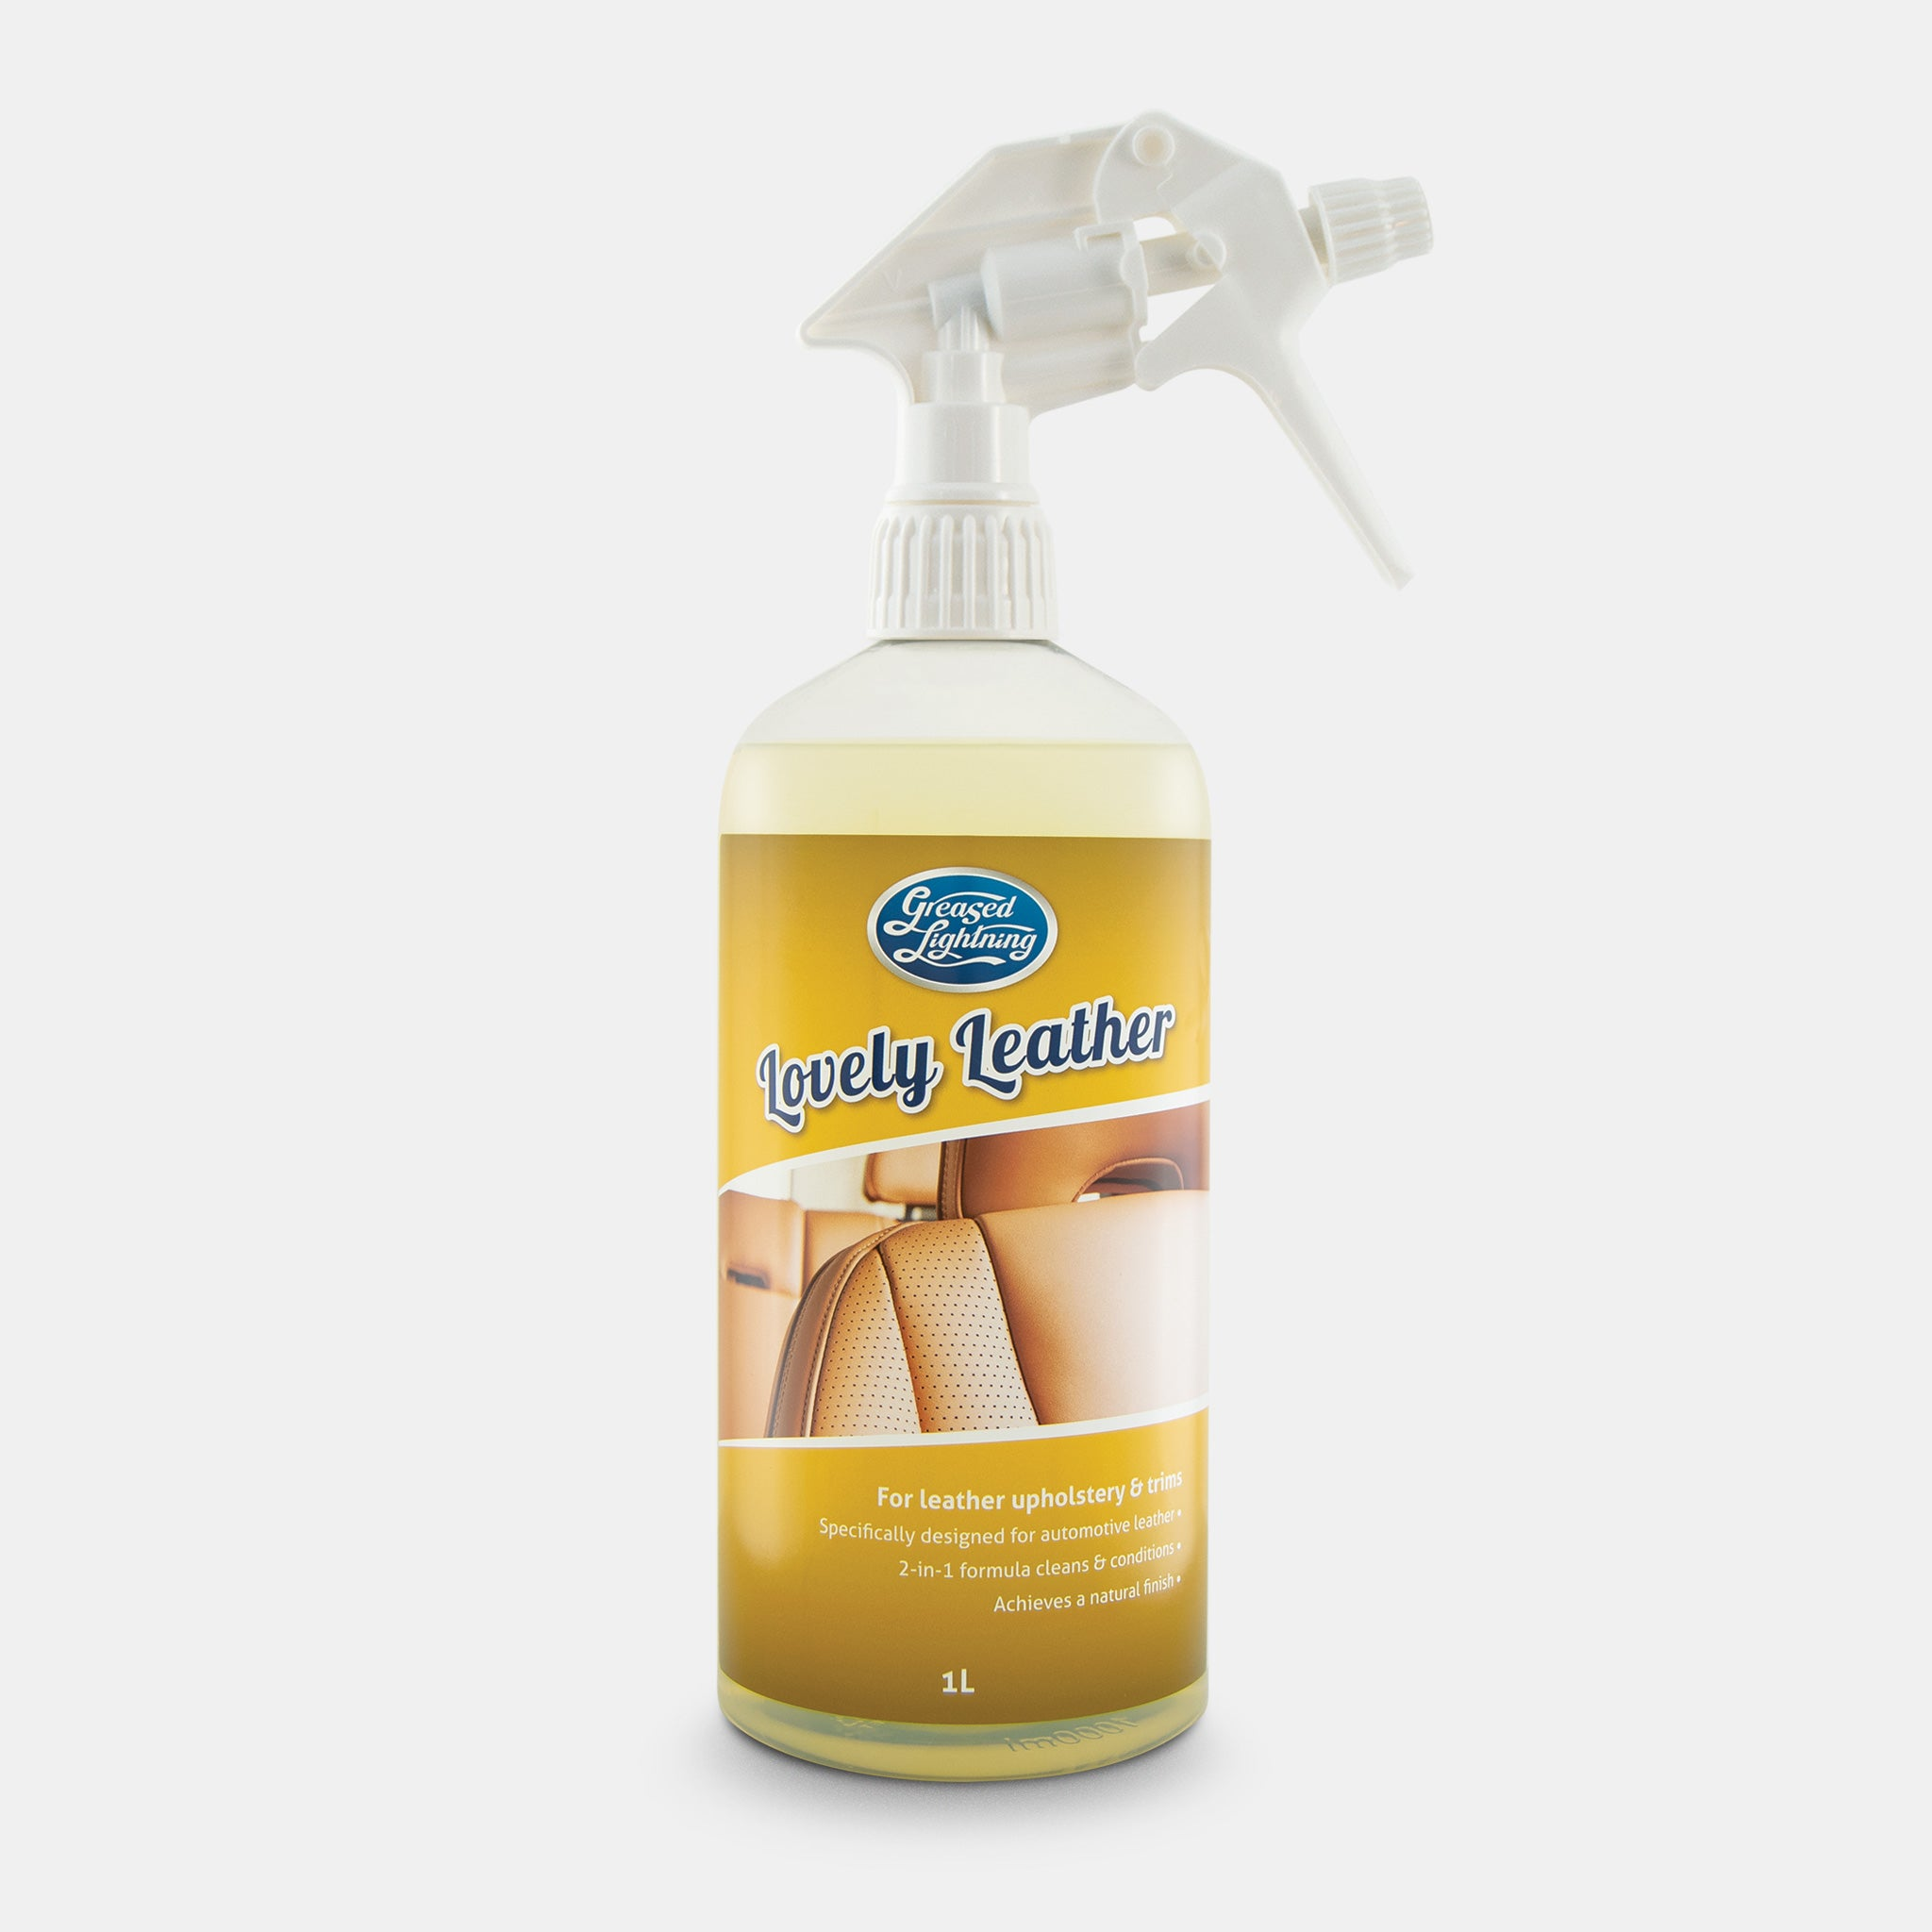 Greased Lightning Lovely Leather Automotive Leather Cleaner